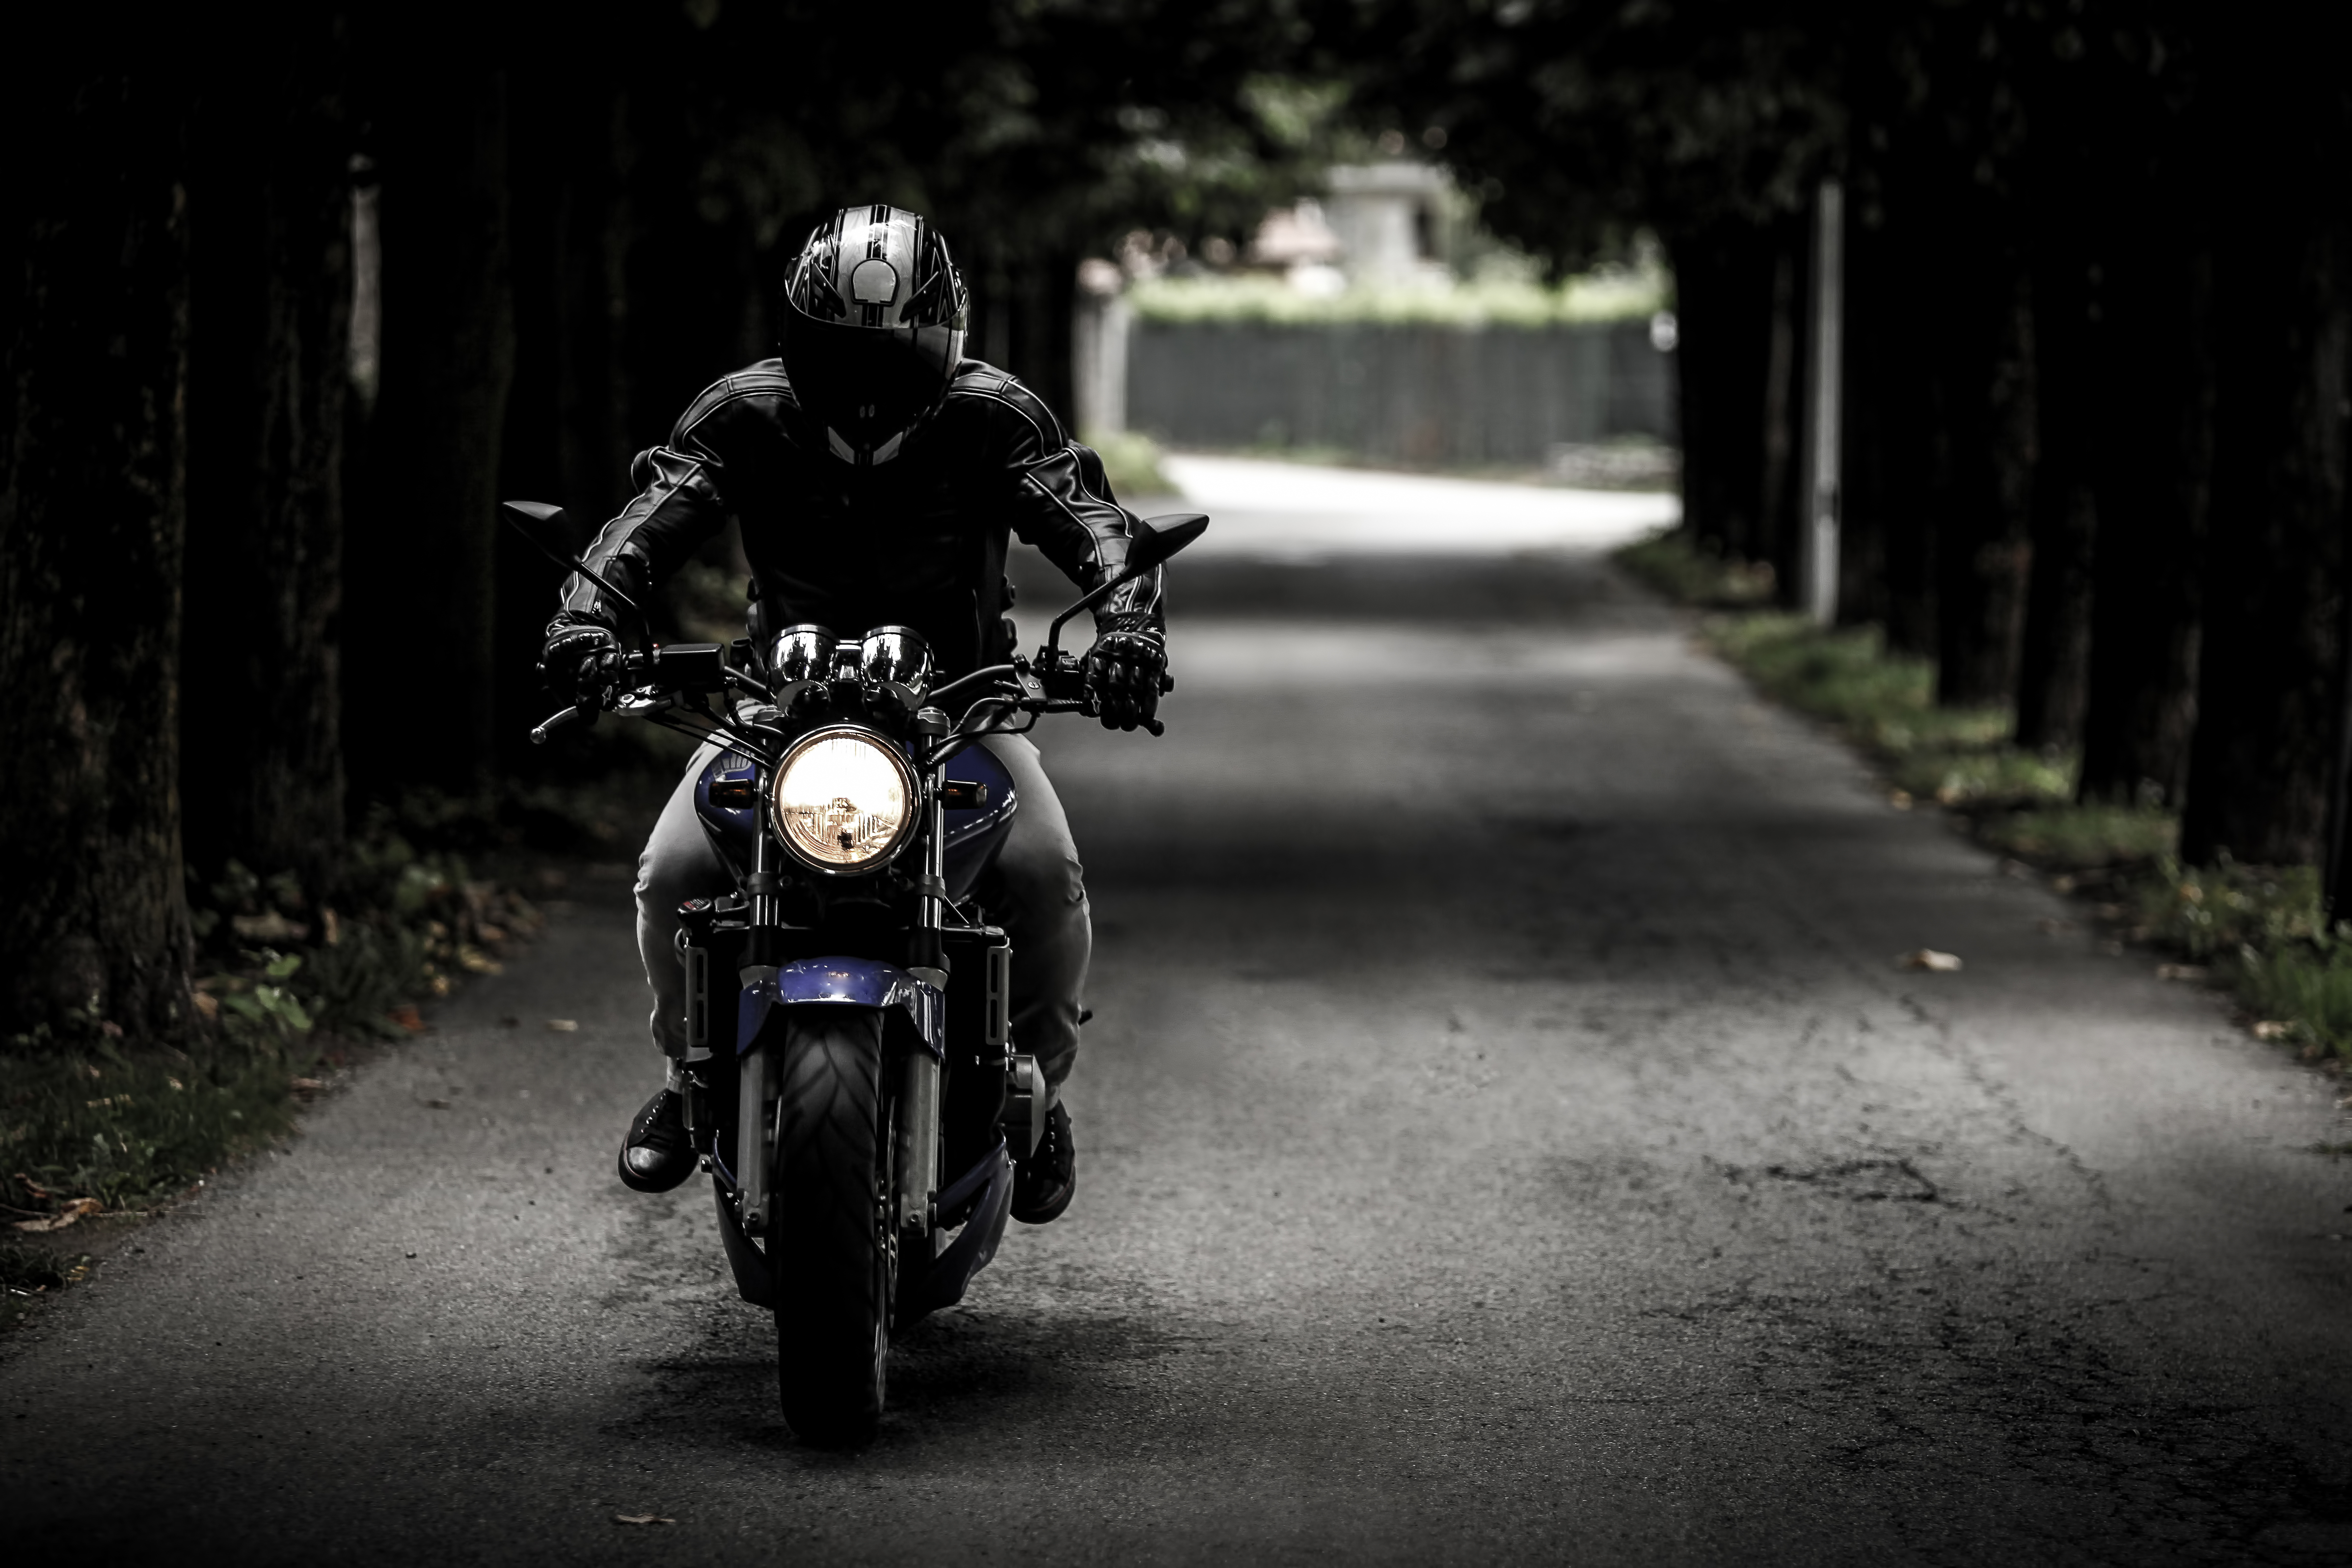 Motorcycle asset recovery is a highly specialized segment, and Millennium has an entire team dedicated to motorcycles.